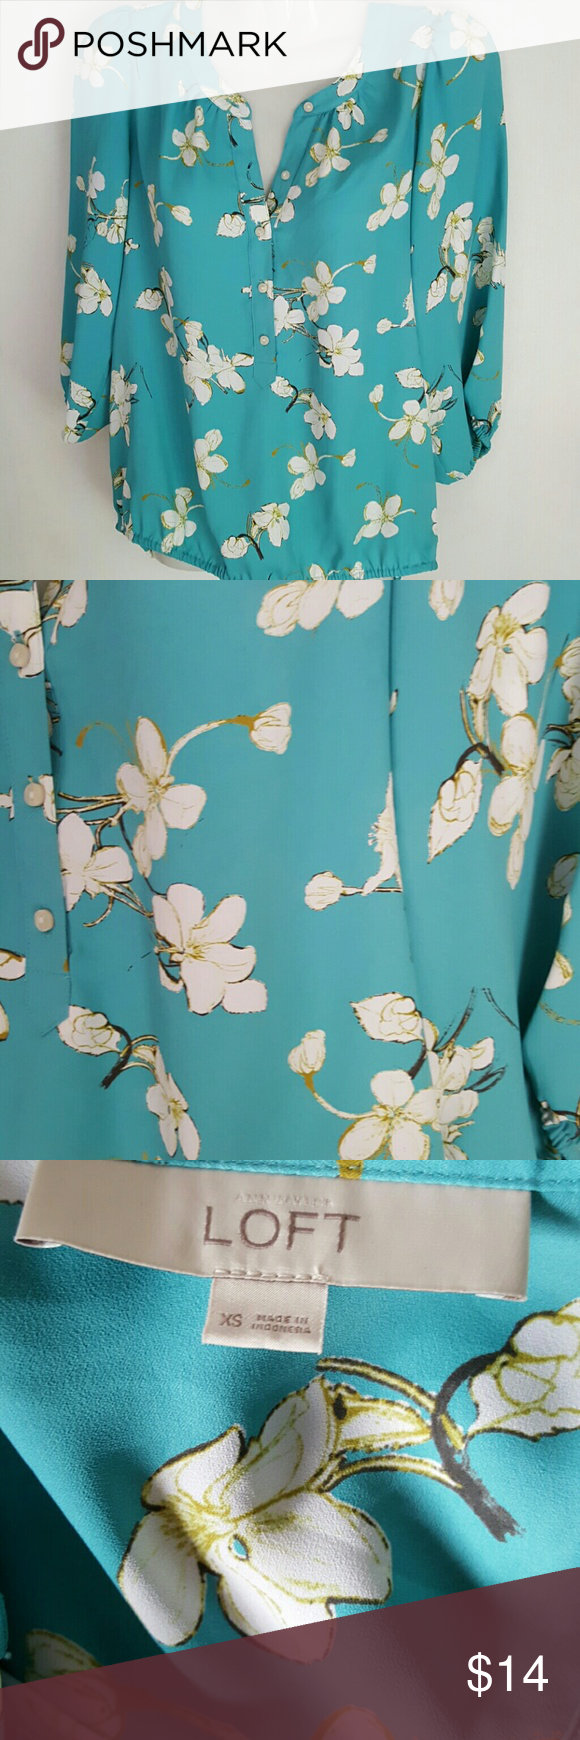 VERY PRETTY ANN TAYLOR LOFT BLOUSE Beautiful colors! Aqua, white, olive. Polyester  Size xsmall Elastic waistband and cuffs Perfect for this time of year Comes from a smoke free home  BUNDLE & SAVE Ann Taylor Tops Blouses